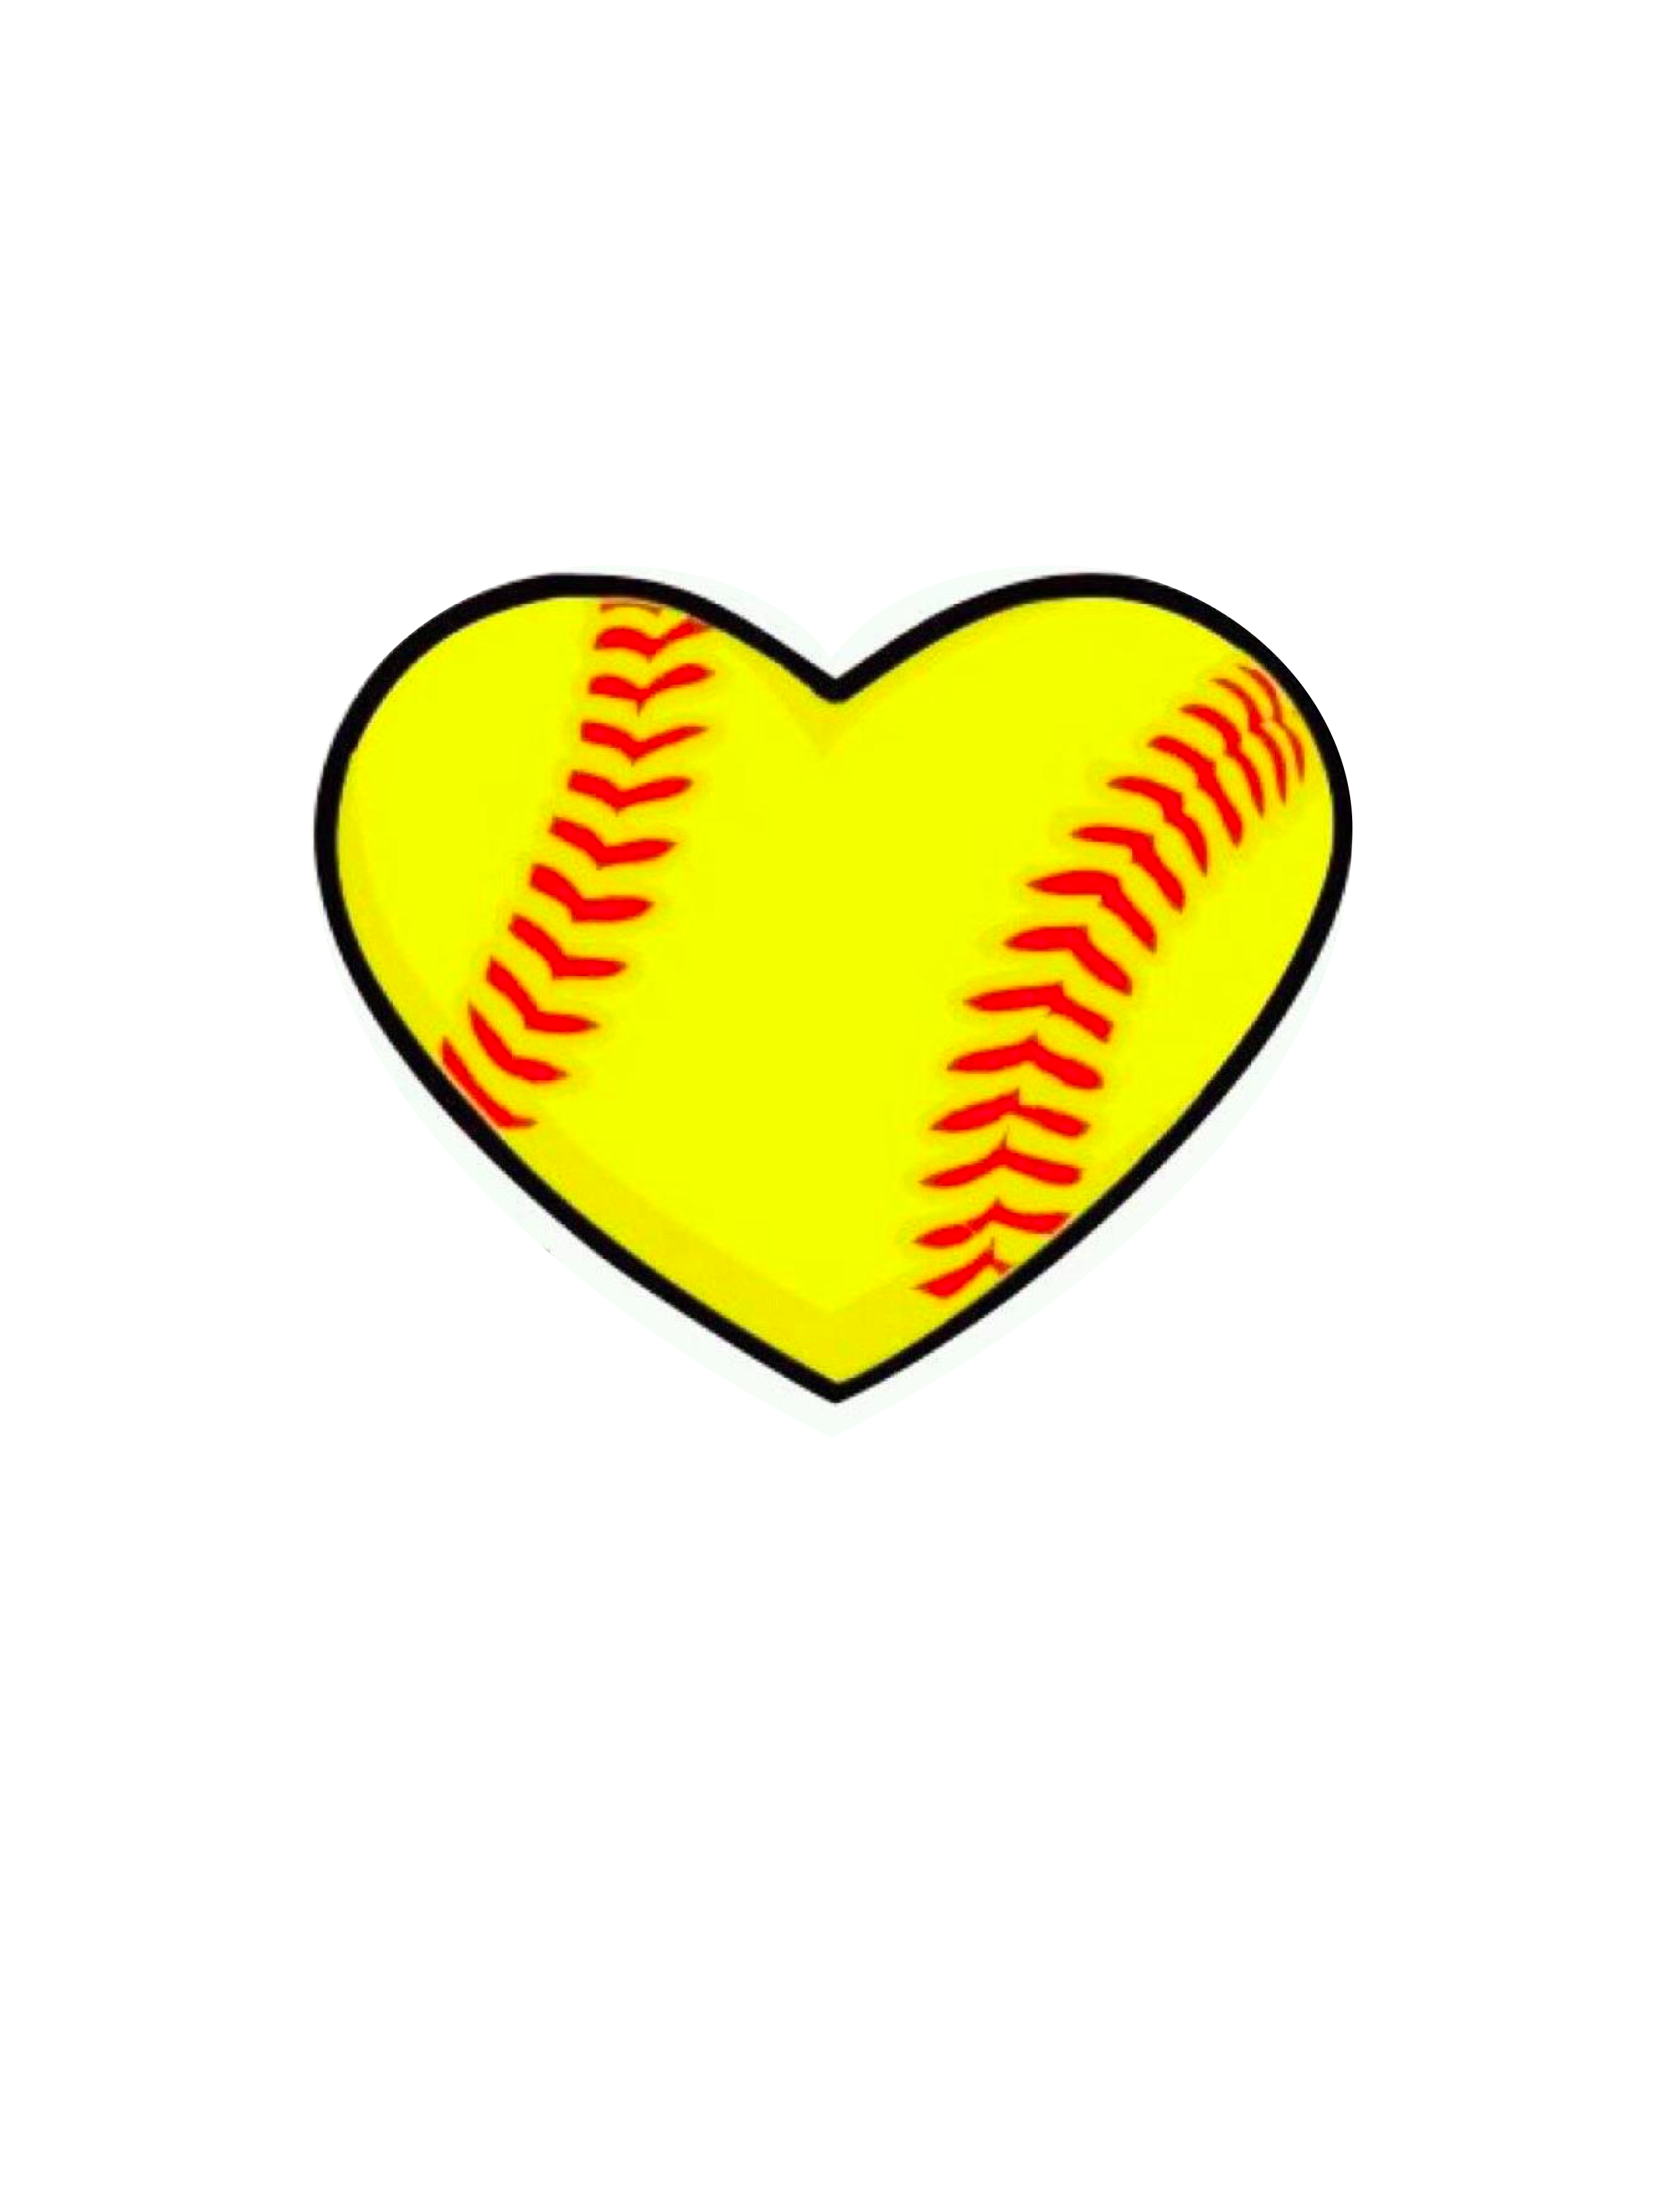 Softball simple. Free clipart download best